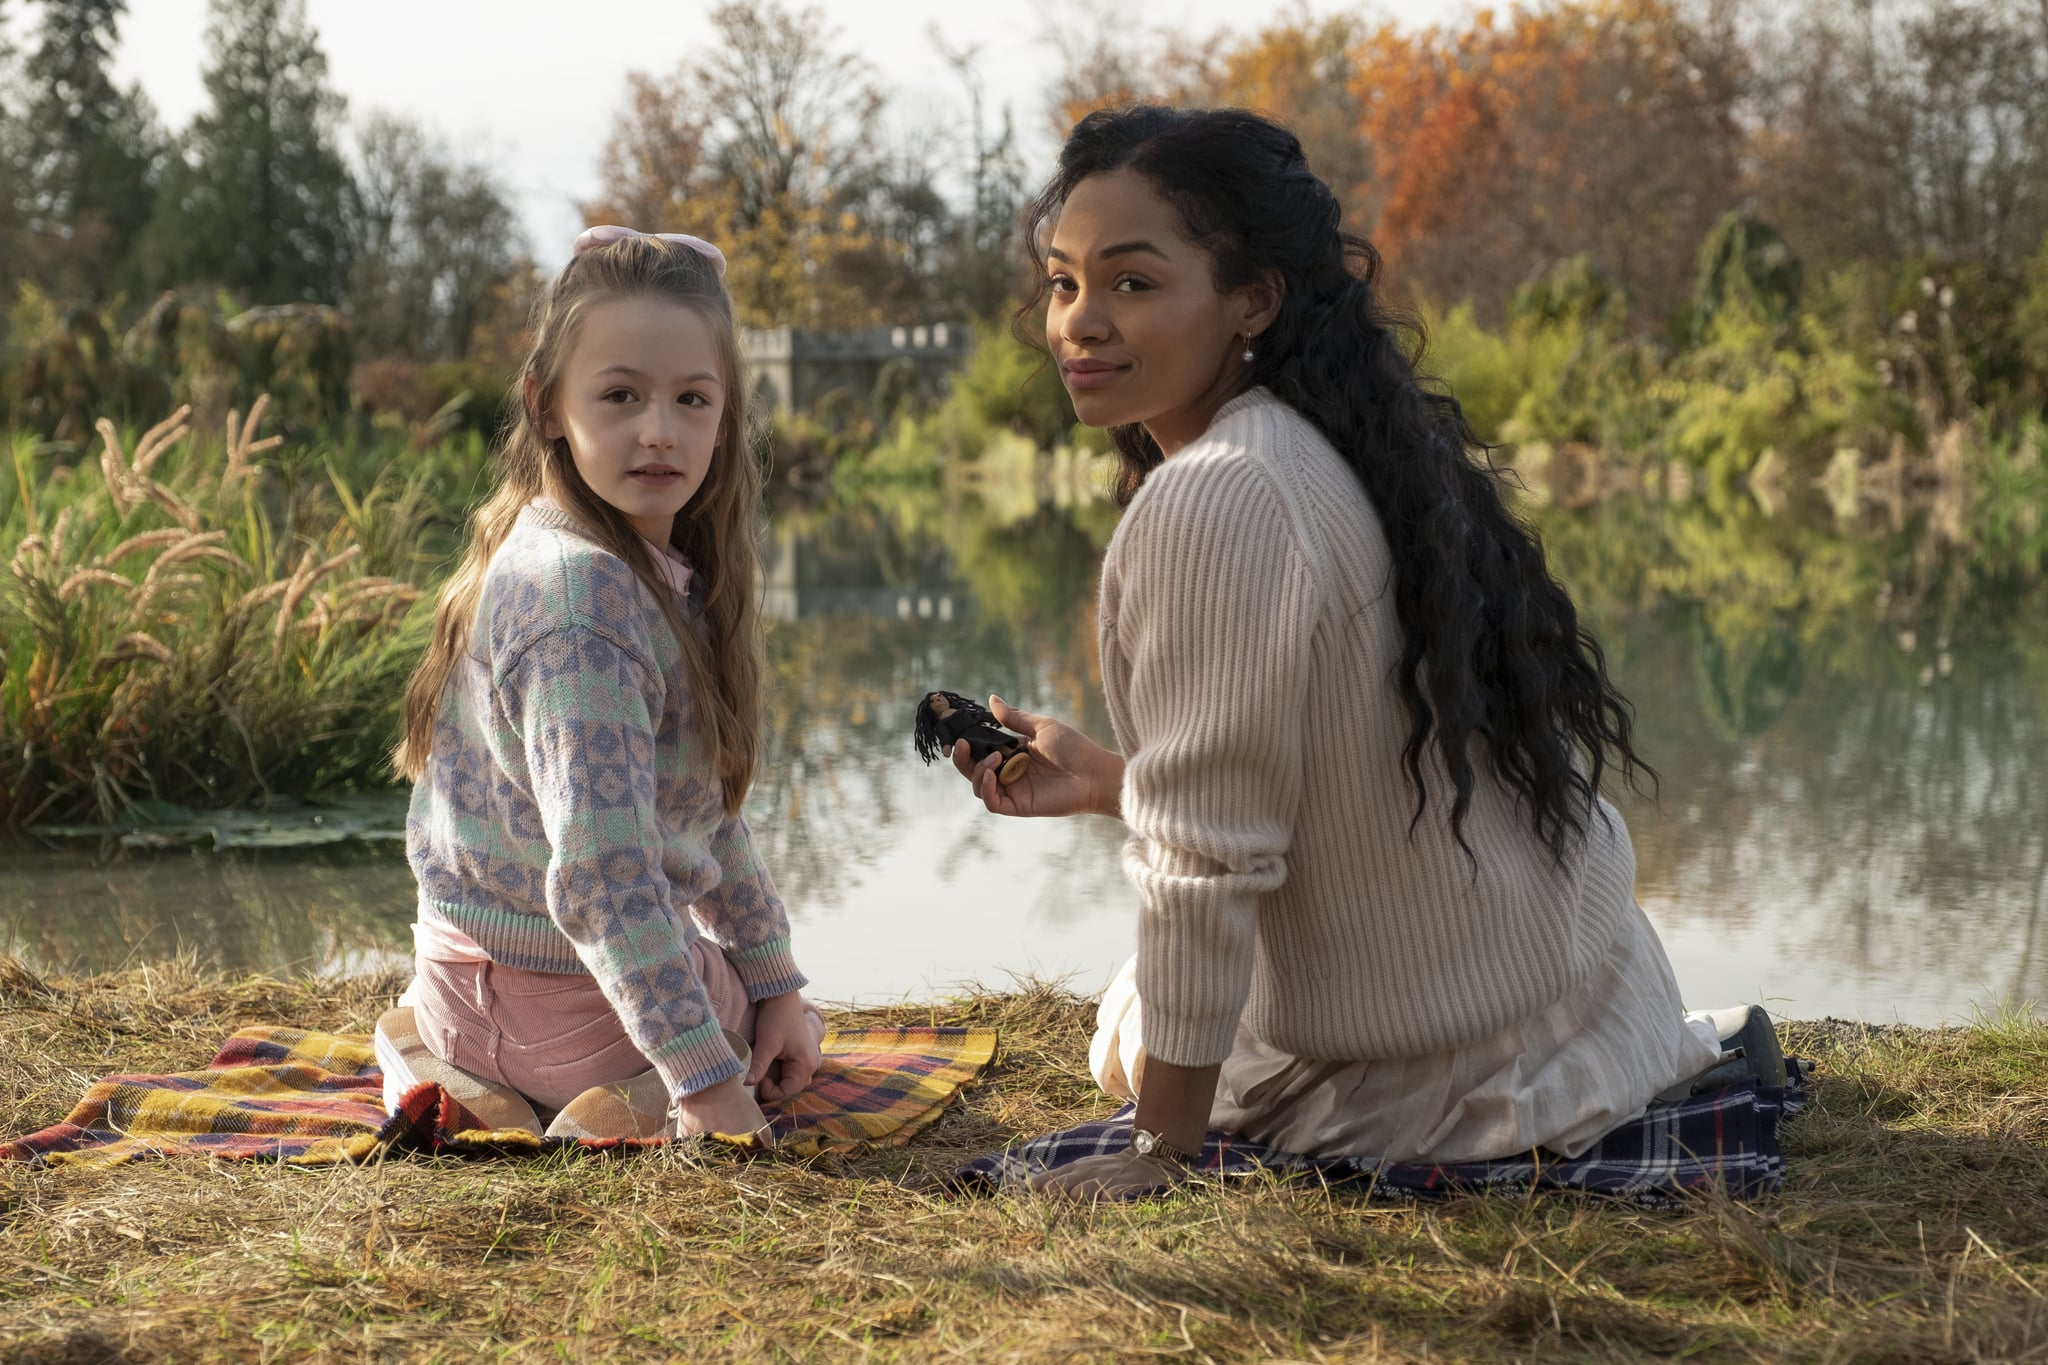 THE HAUNTING OF BLY MANOR (L to R) AMELIE SMITH as FLORA and TAHIRAH SHARIF as REBECCA JESSEL in THE HAUNTING OF BLY MANOR Cr. EIKE SCHROTER/NETFLIX  2020